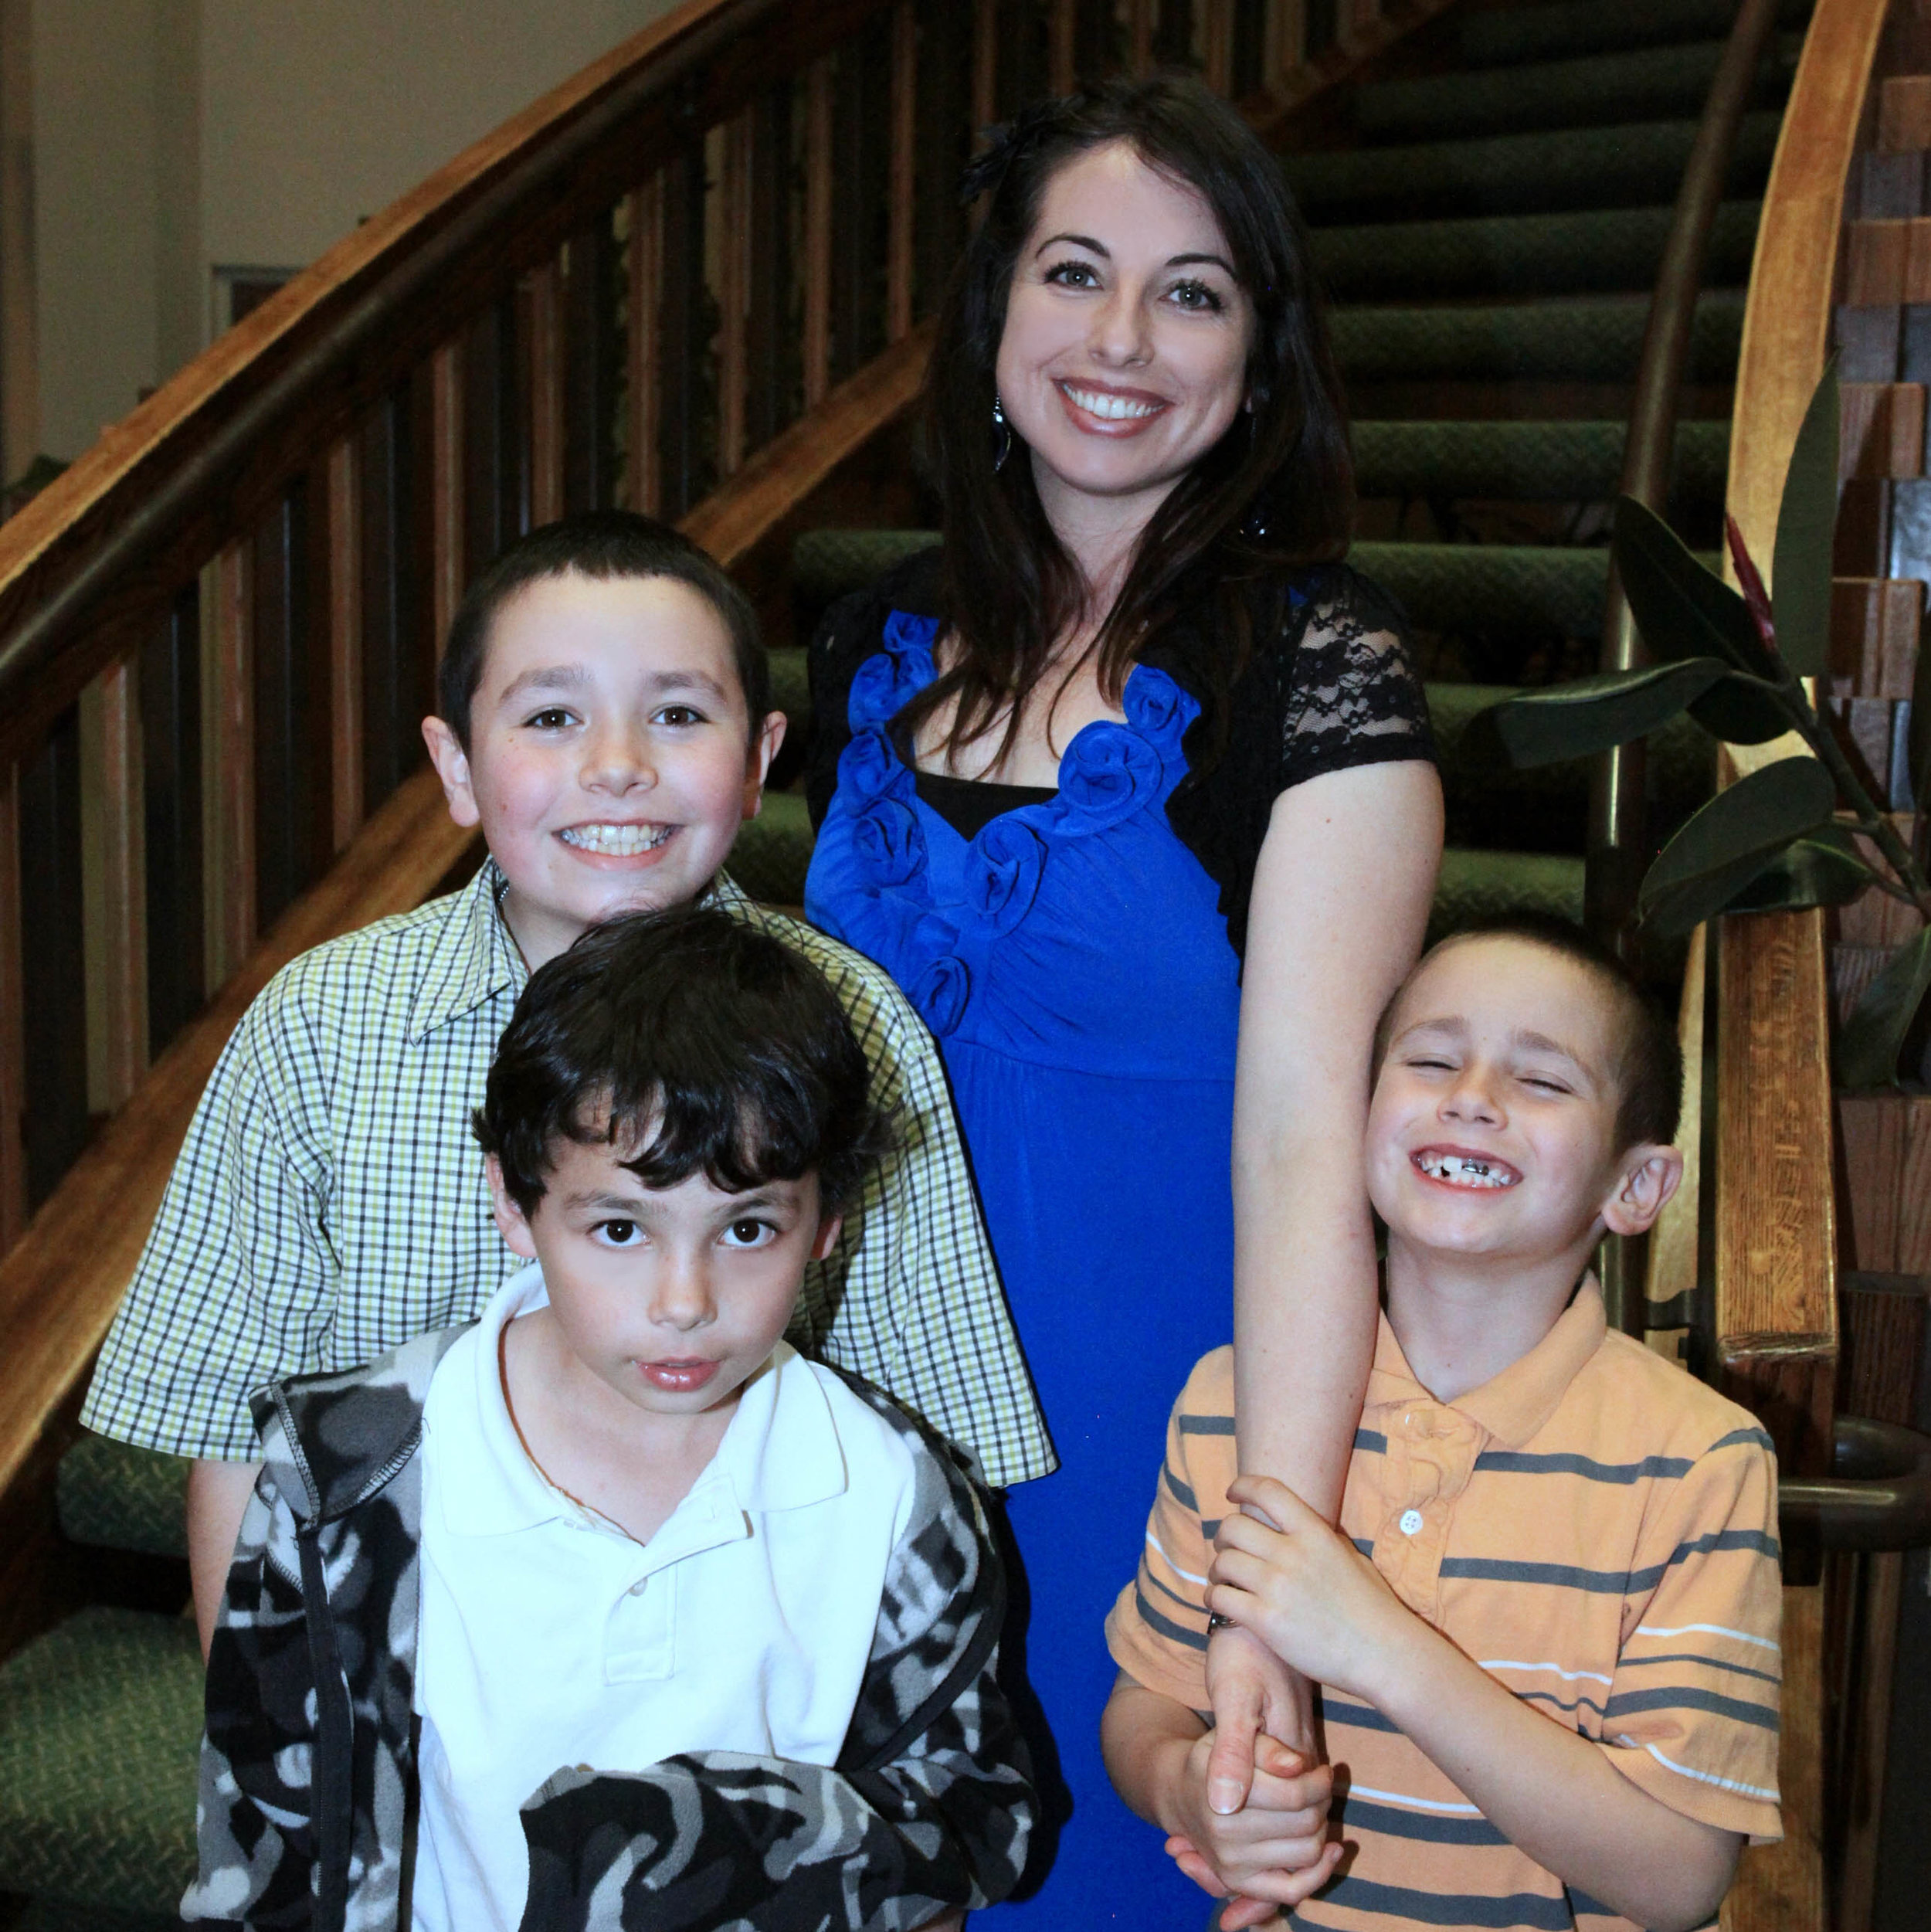 Theresa and her three boys have new hope after she got the recovery she needed at Teen Challenge NorWestCal Nevada.